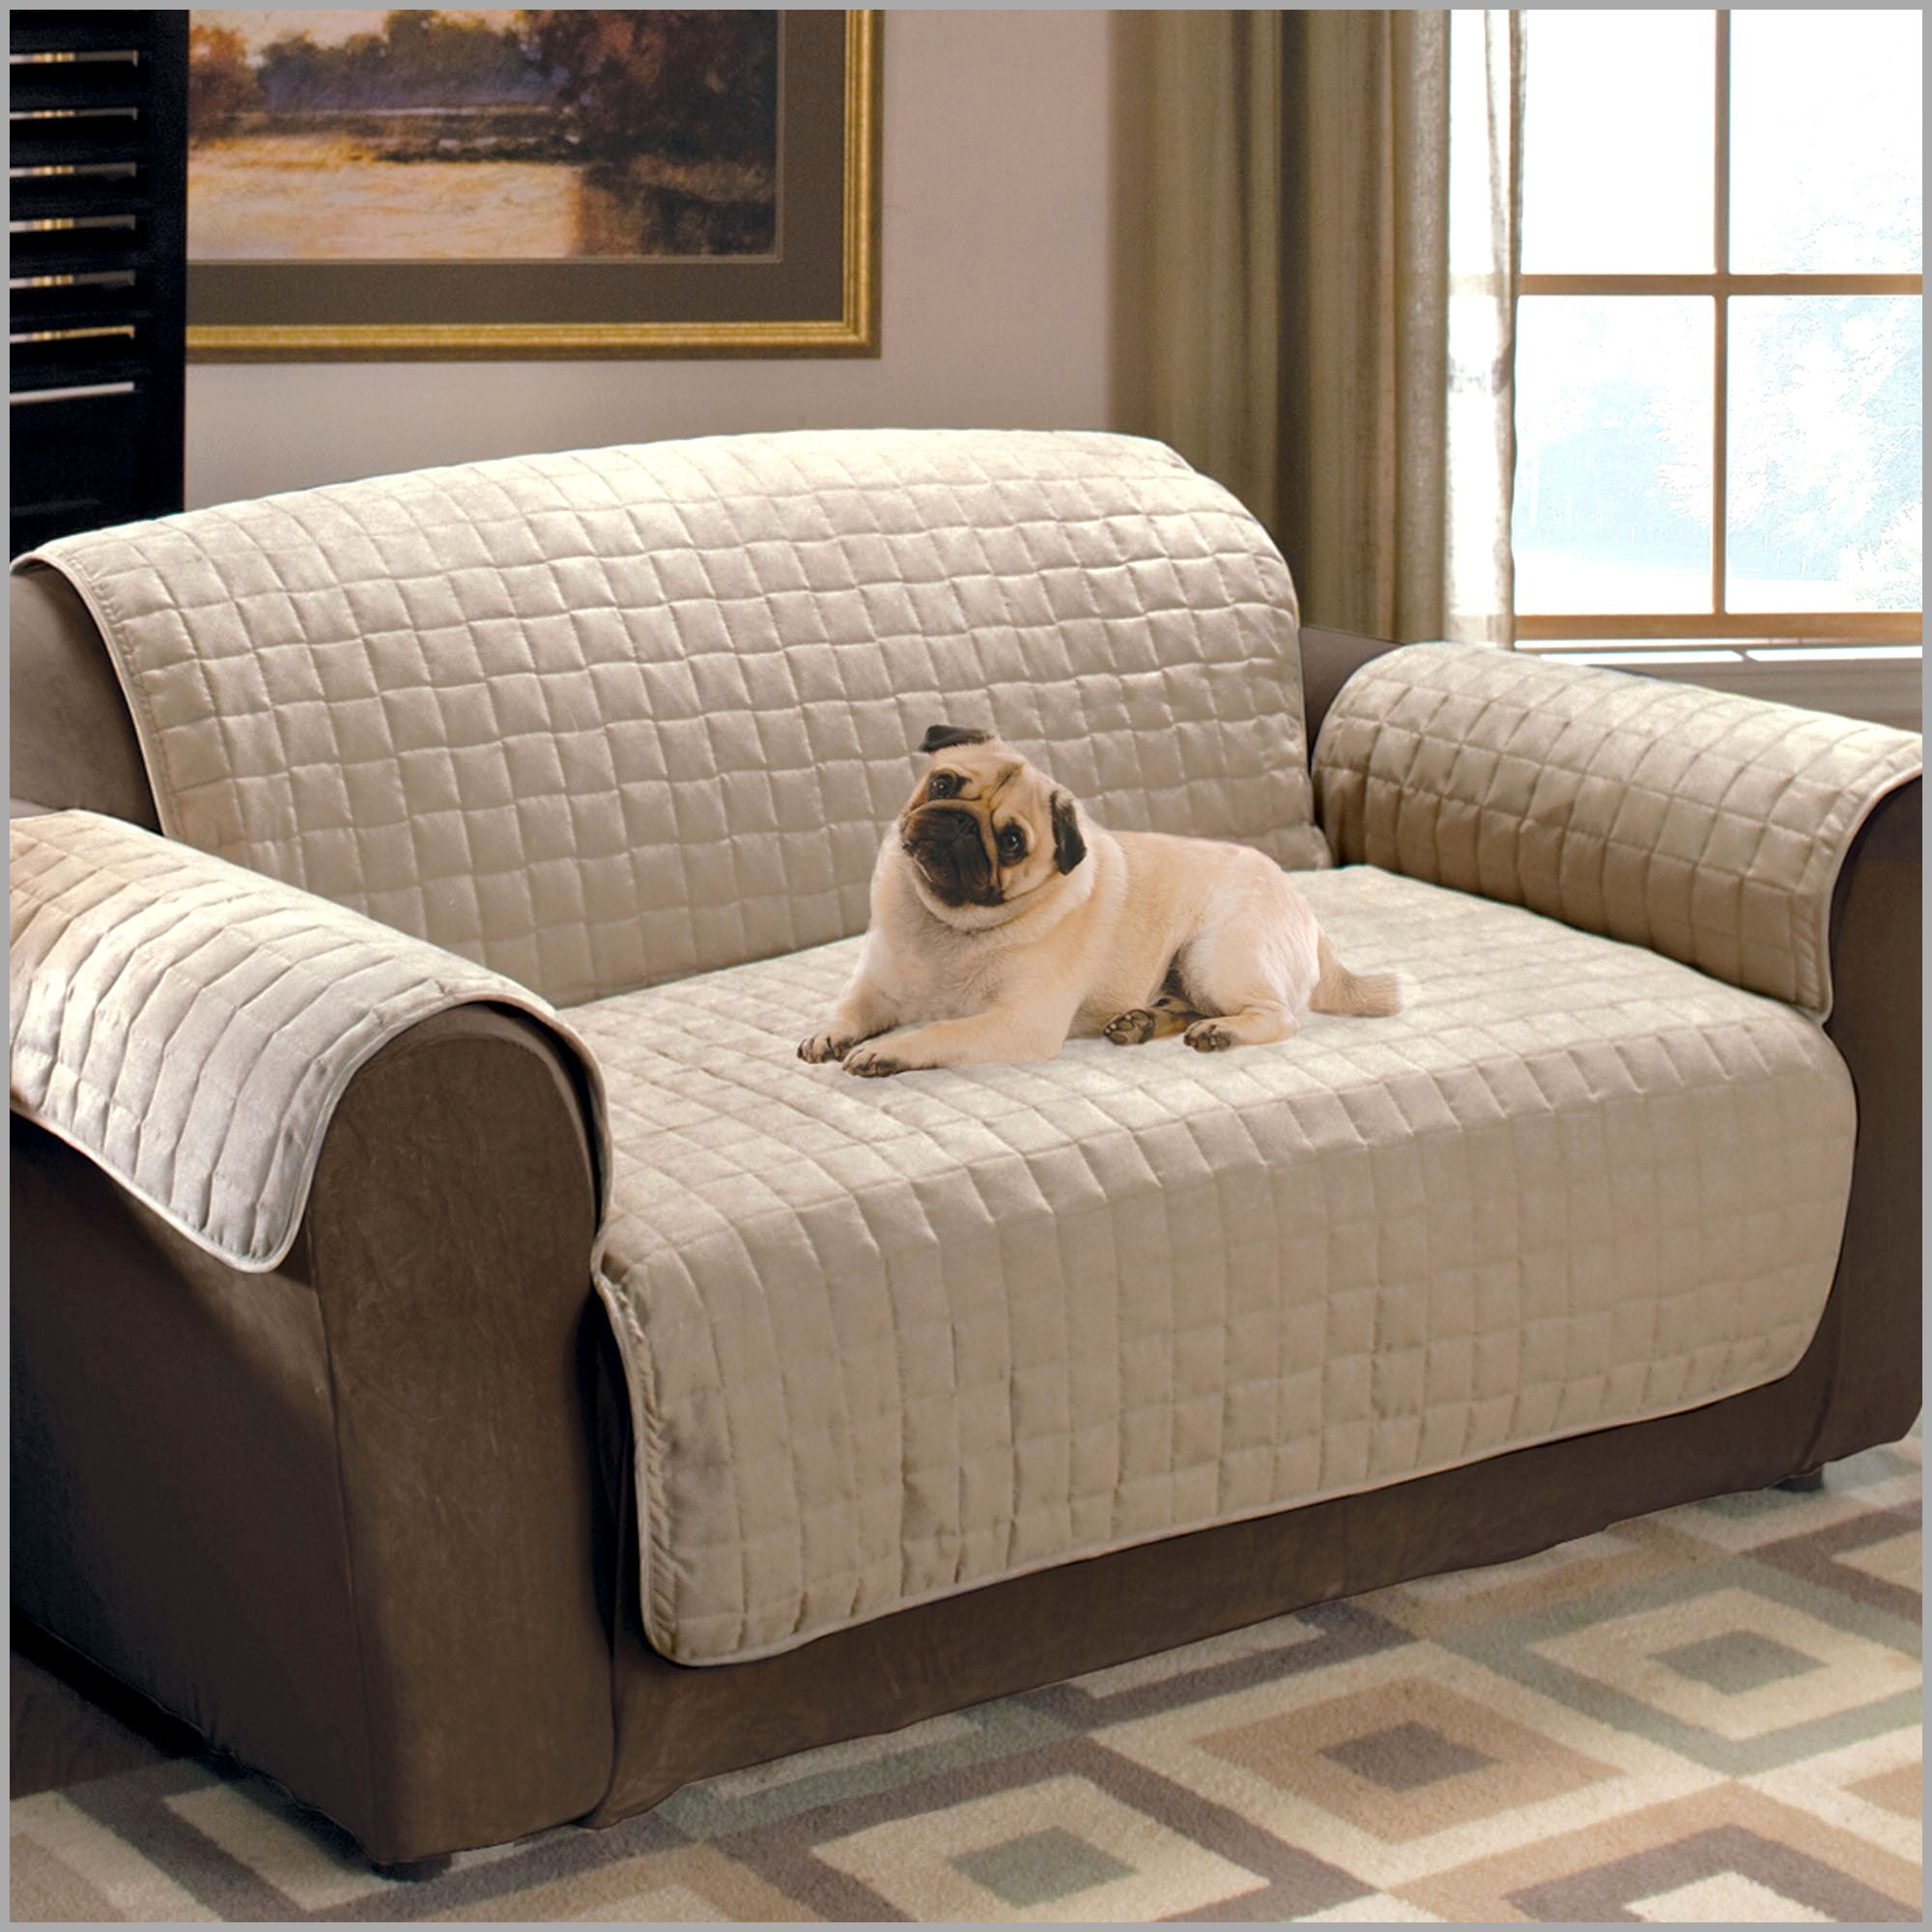 Sofa Pet Cover Superb Appealing Pet Cover for sofa Decoration sofa Ideas Ideas